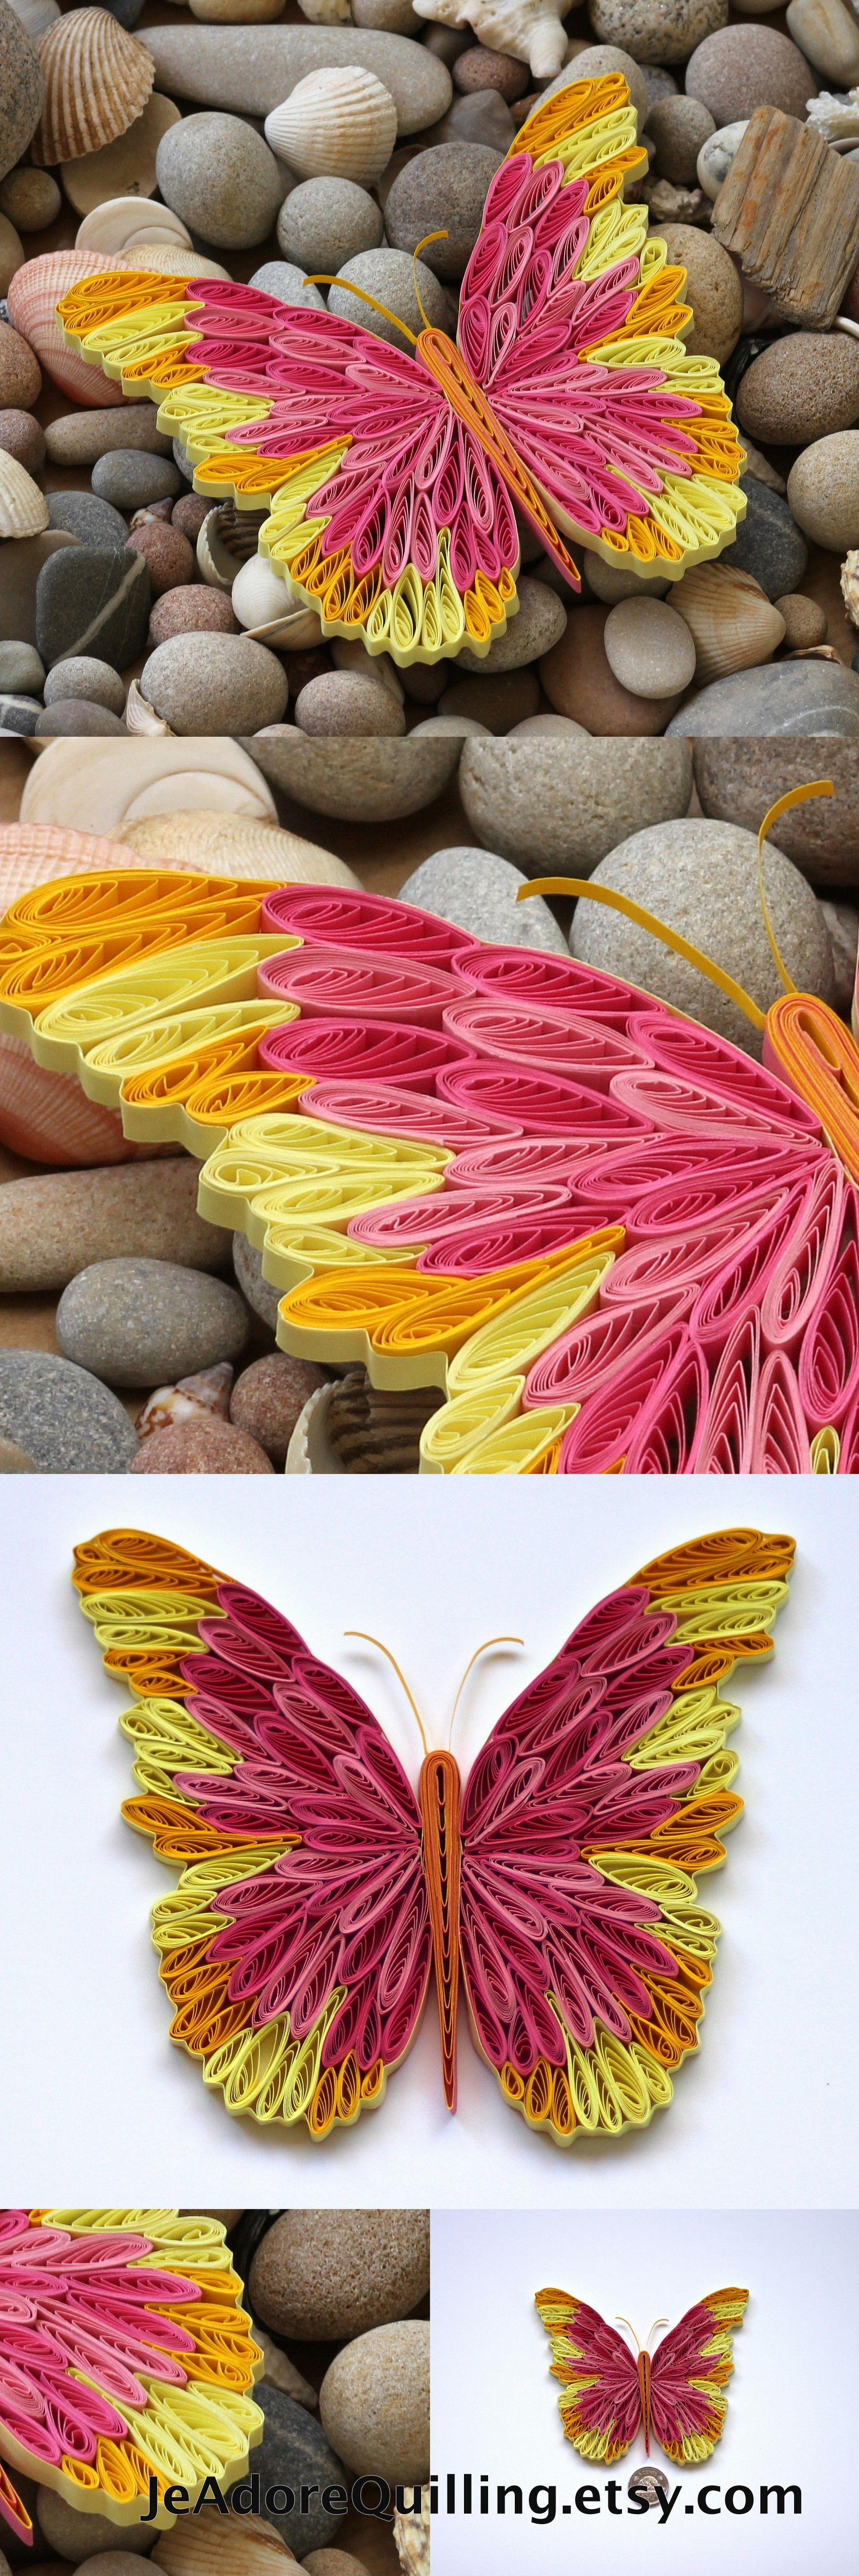 Butterfly Pink Yellow Colorful Bright Gift Christmas Wedding ... for Quilling Butterfly Tutorial  75tgx